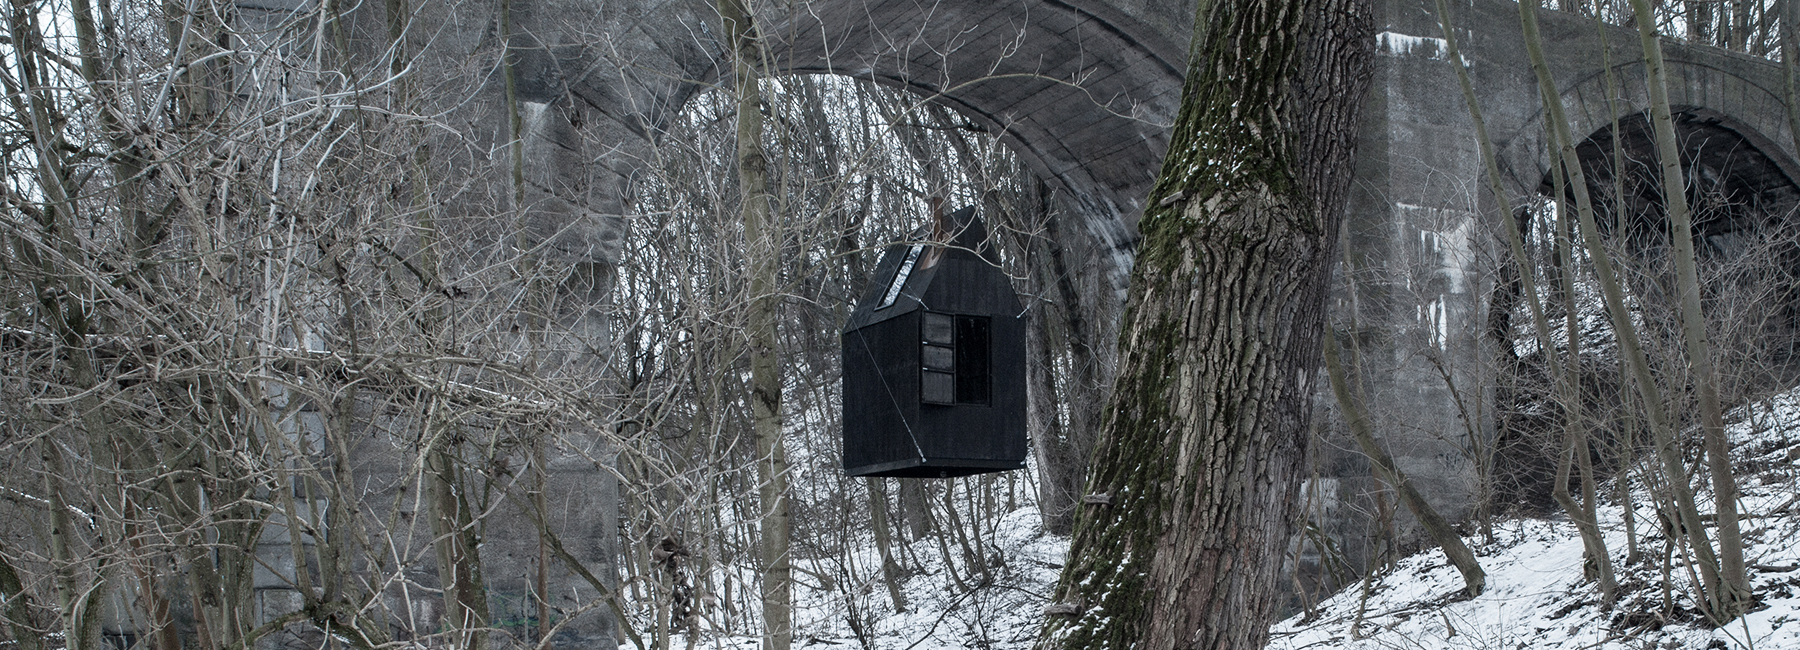 h3t-architekti-flying-black-house-designboom-1800.jpg